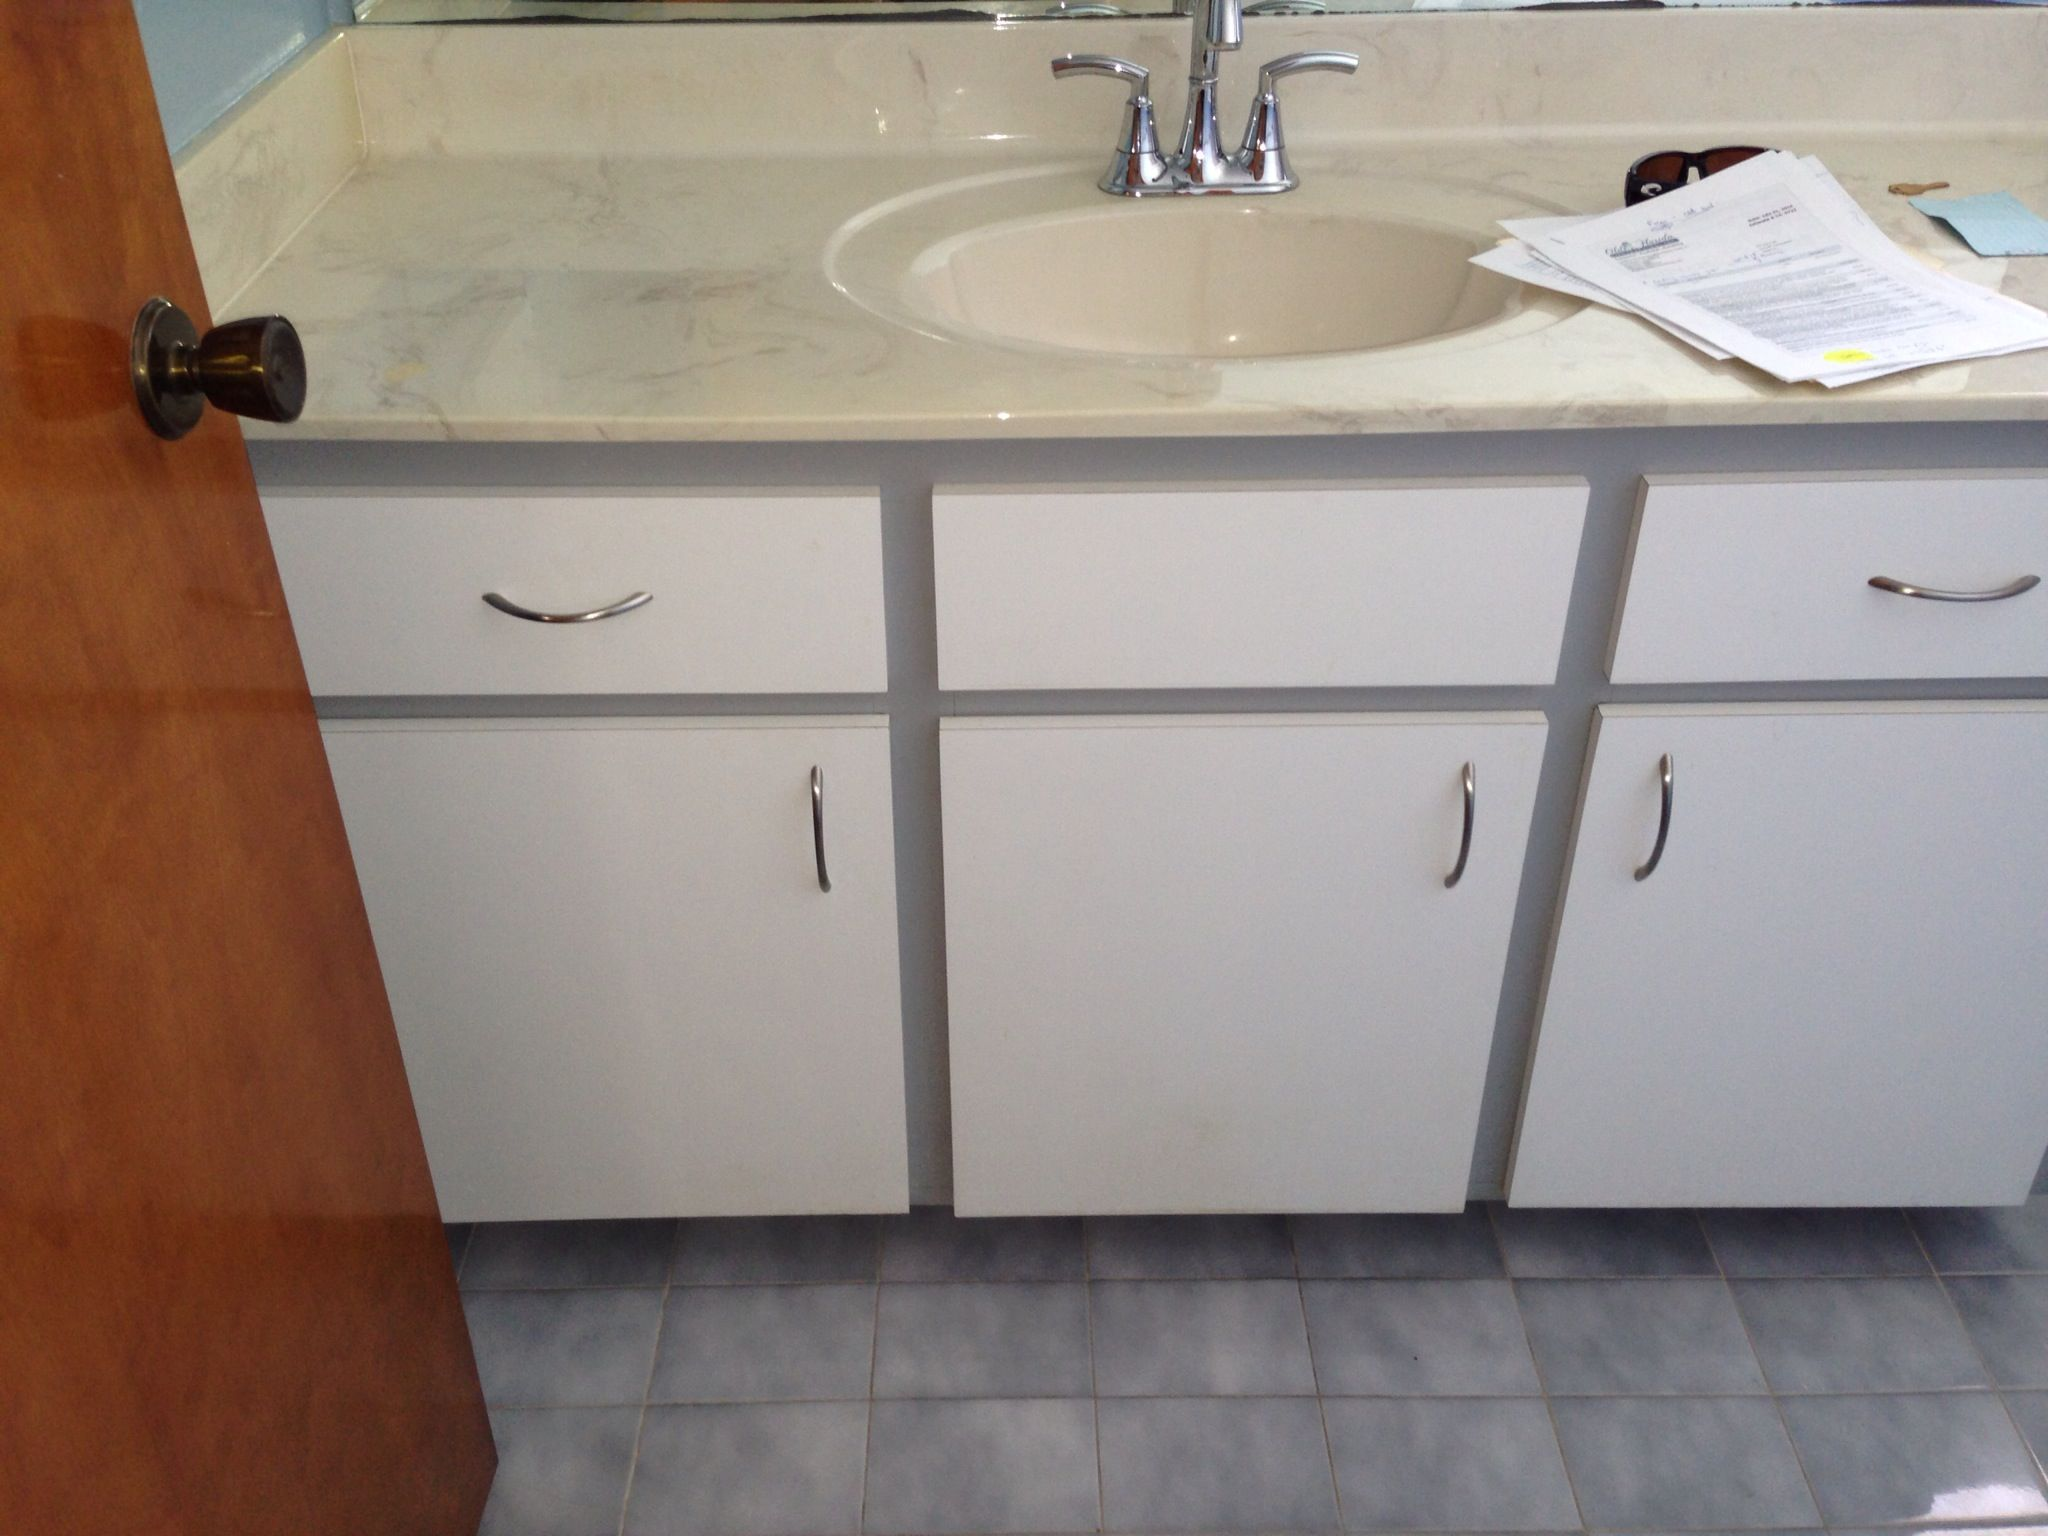 Bathroom Remodel Naples Fl naples park bathroom remodel - olde florida contracting, inc.